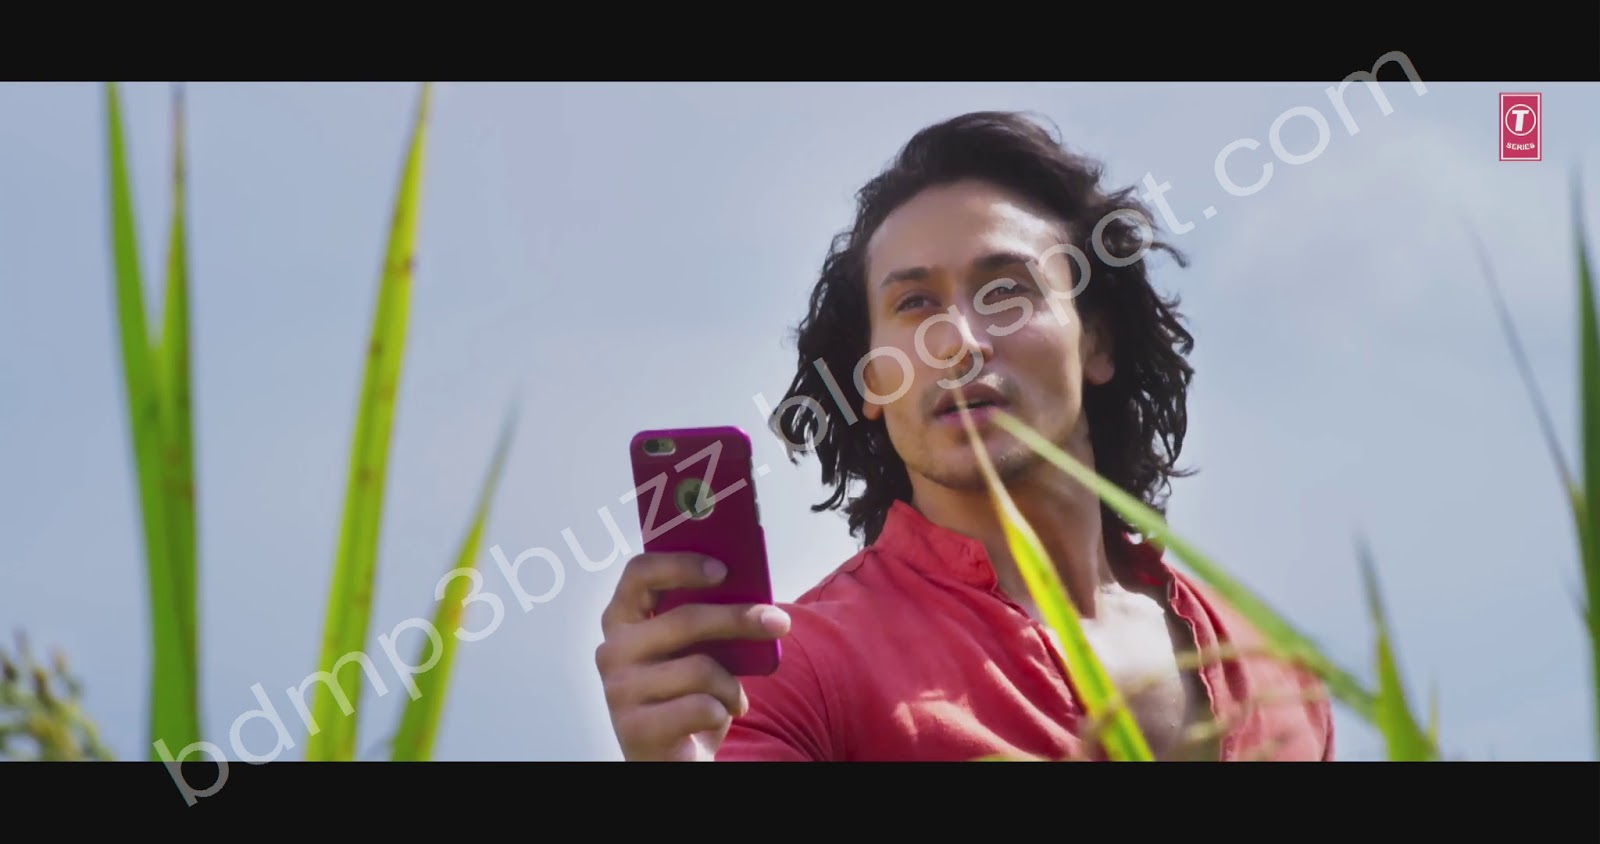 Download songs free 4u mp4 hd video download – page 4 – mp4 hd.